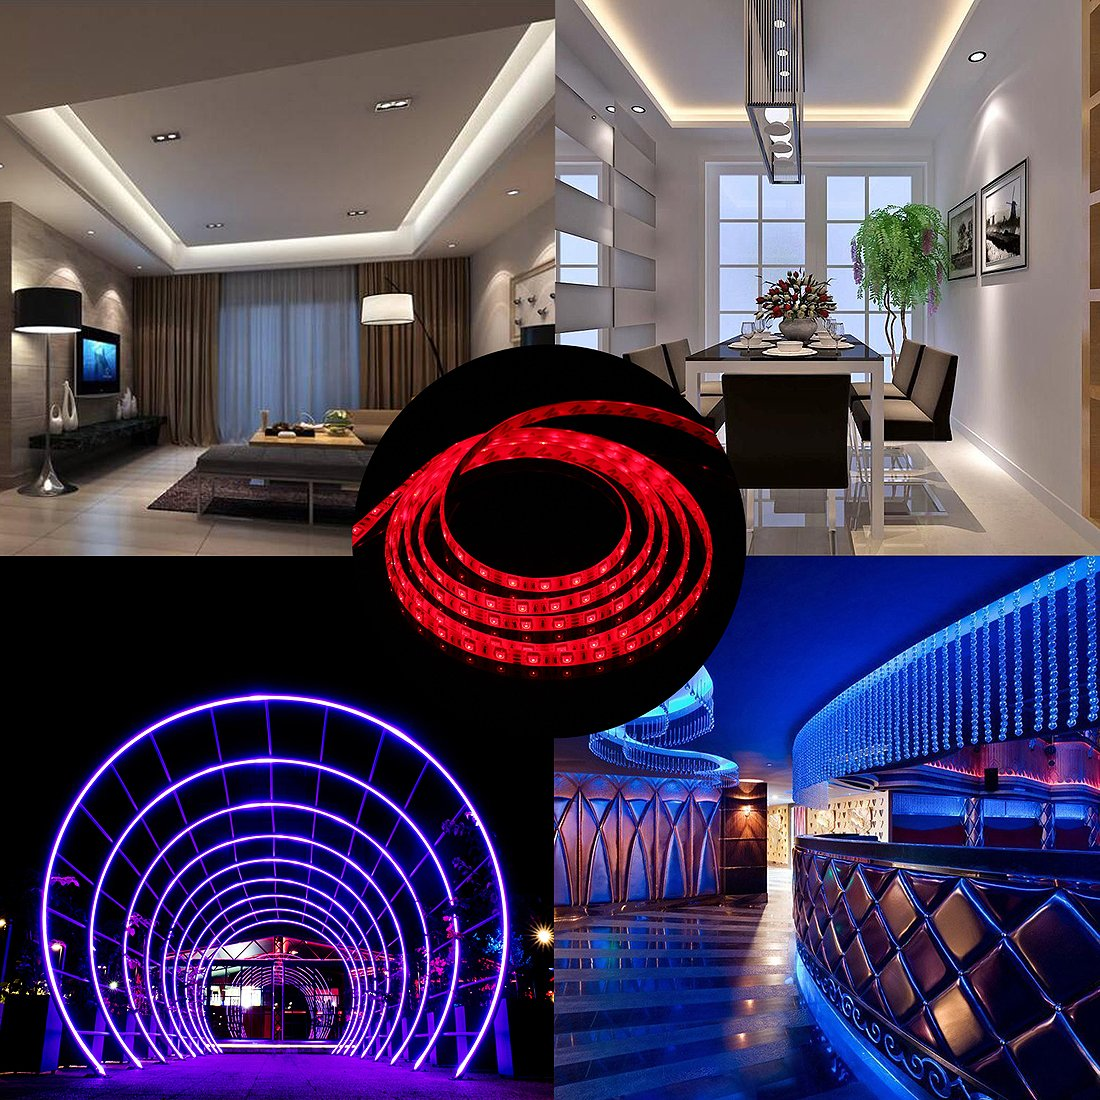 RC LED Strip lights 32.8ft Waterproof Flexible SMD5050 300LEDs with 44Key Remote 12V Power Adapter for Party Holiday Home and Outdoor by RC (Image #6)